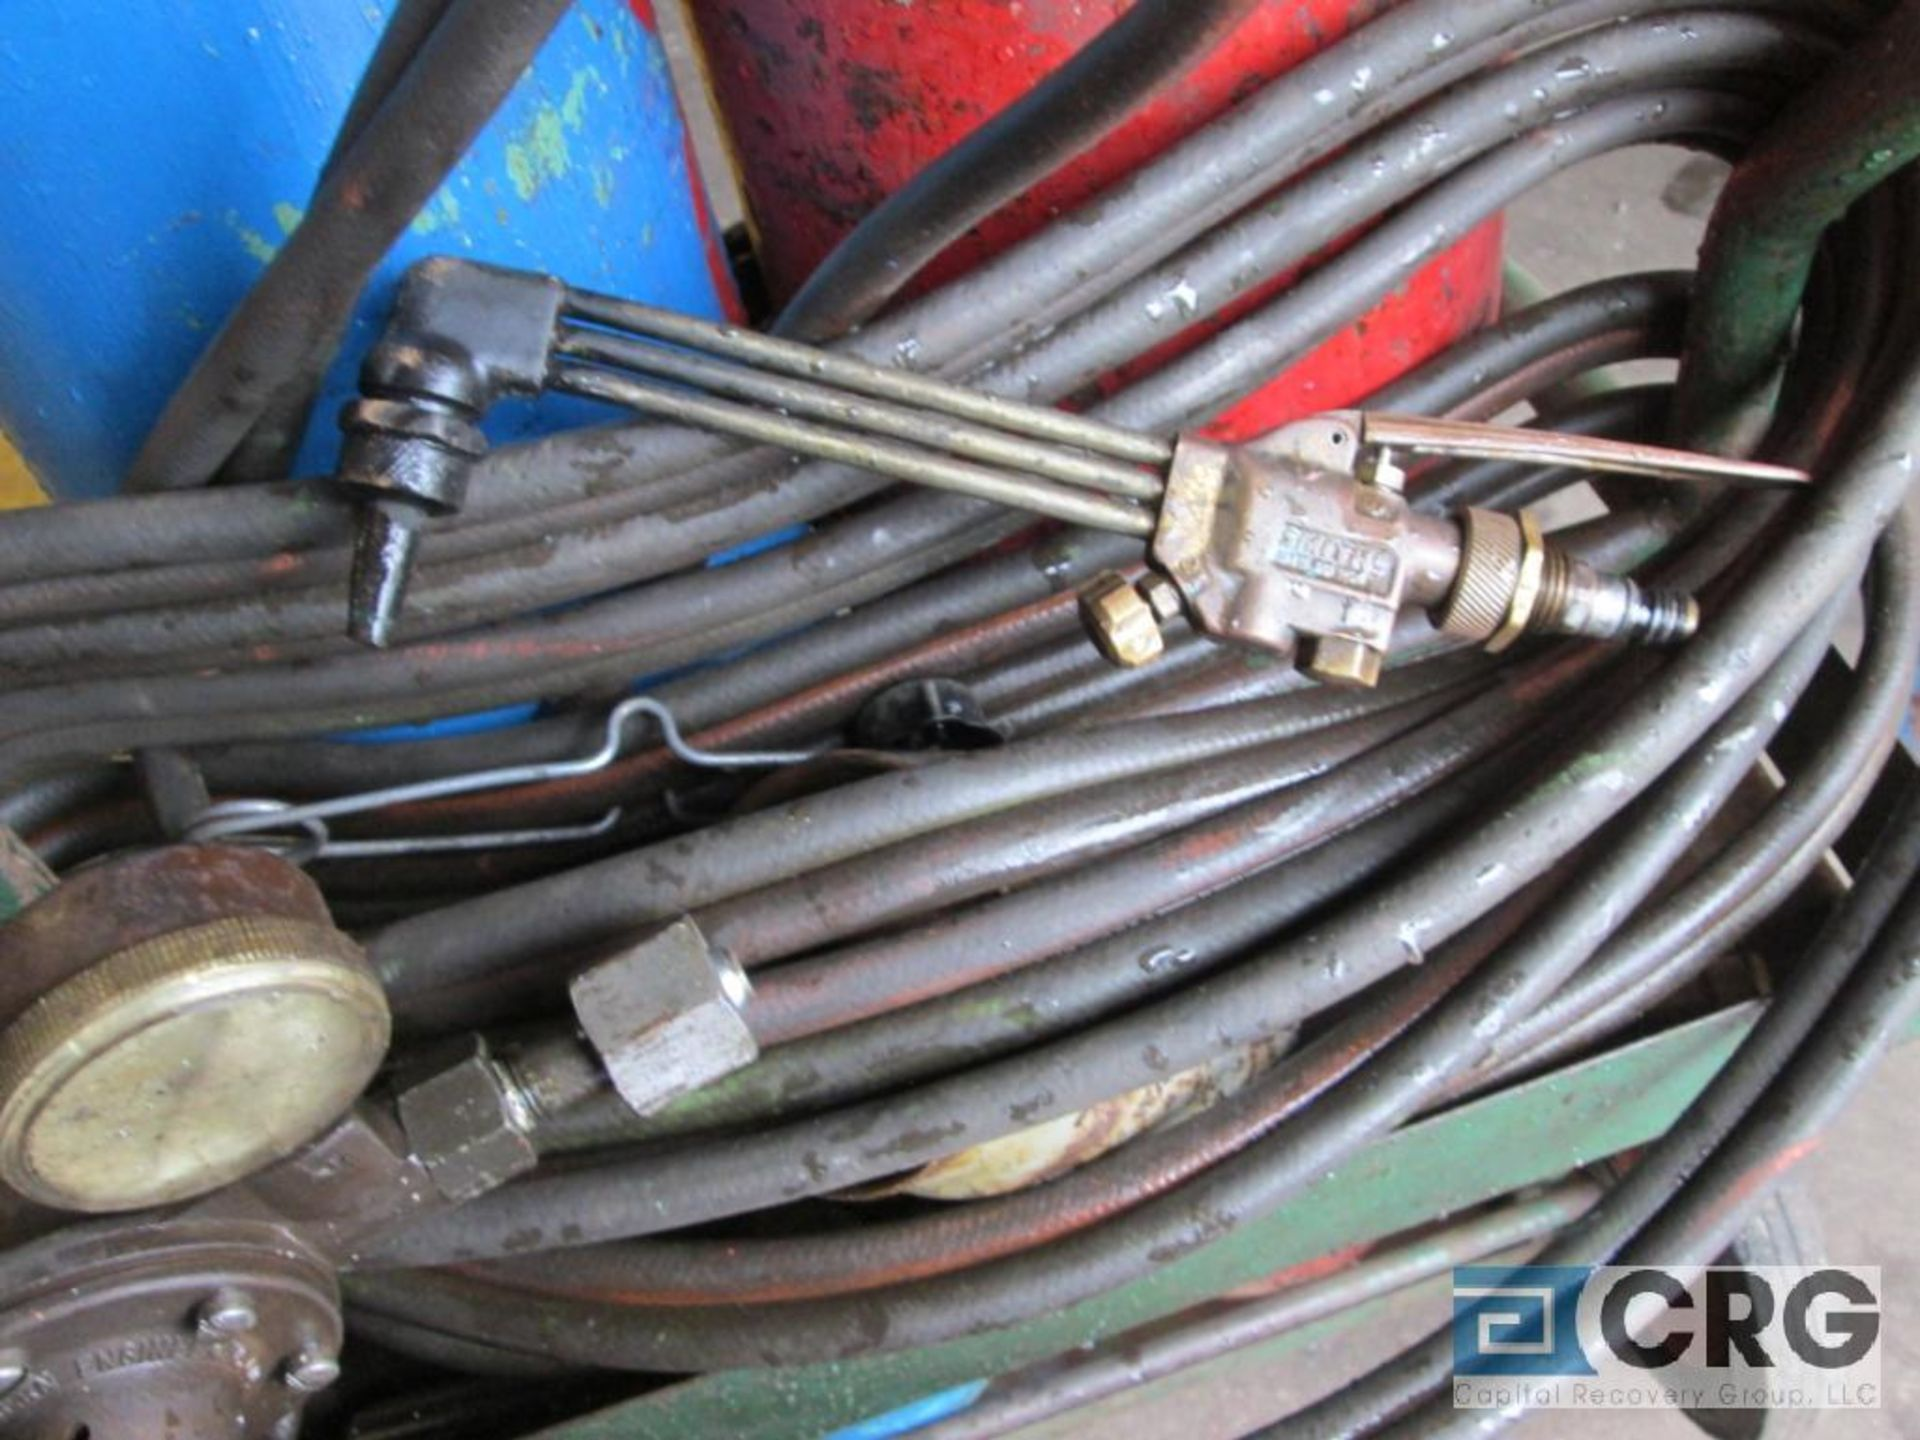 Portable cut and weld unit with tanks, regulators, hose, torches, and cart - Image 4 of 4